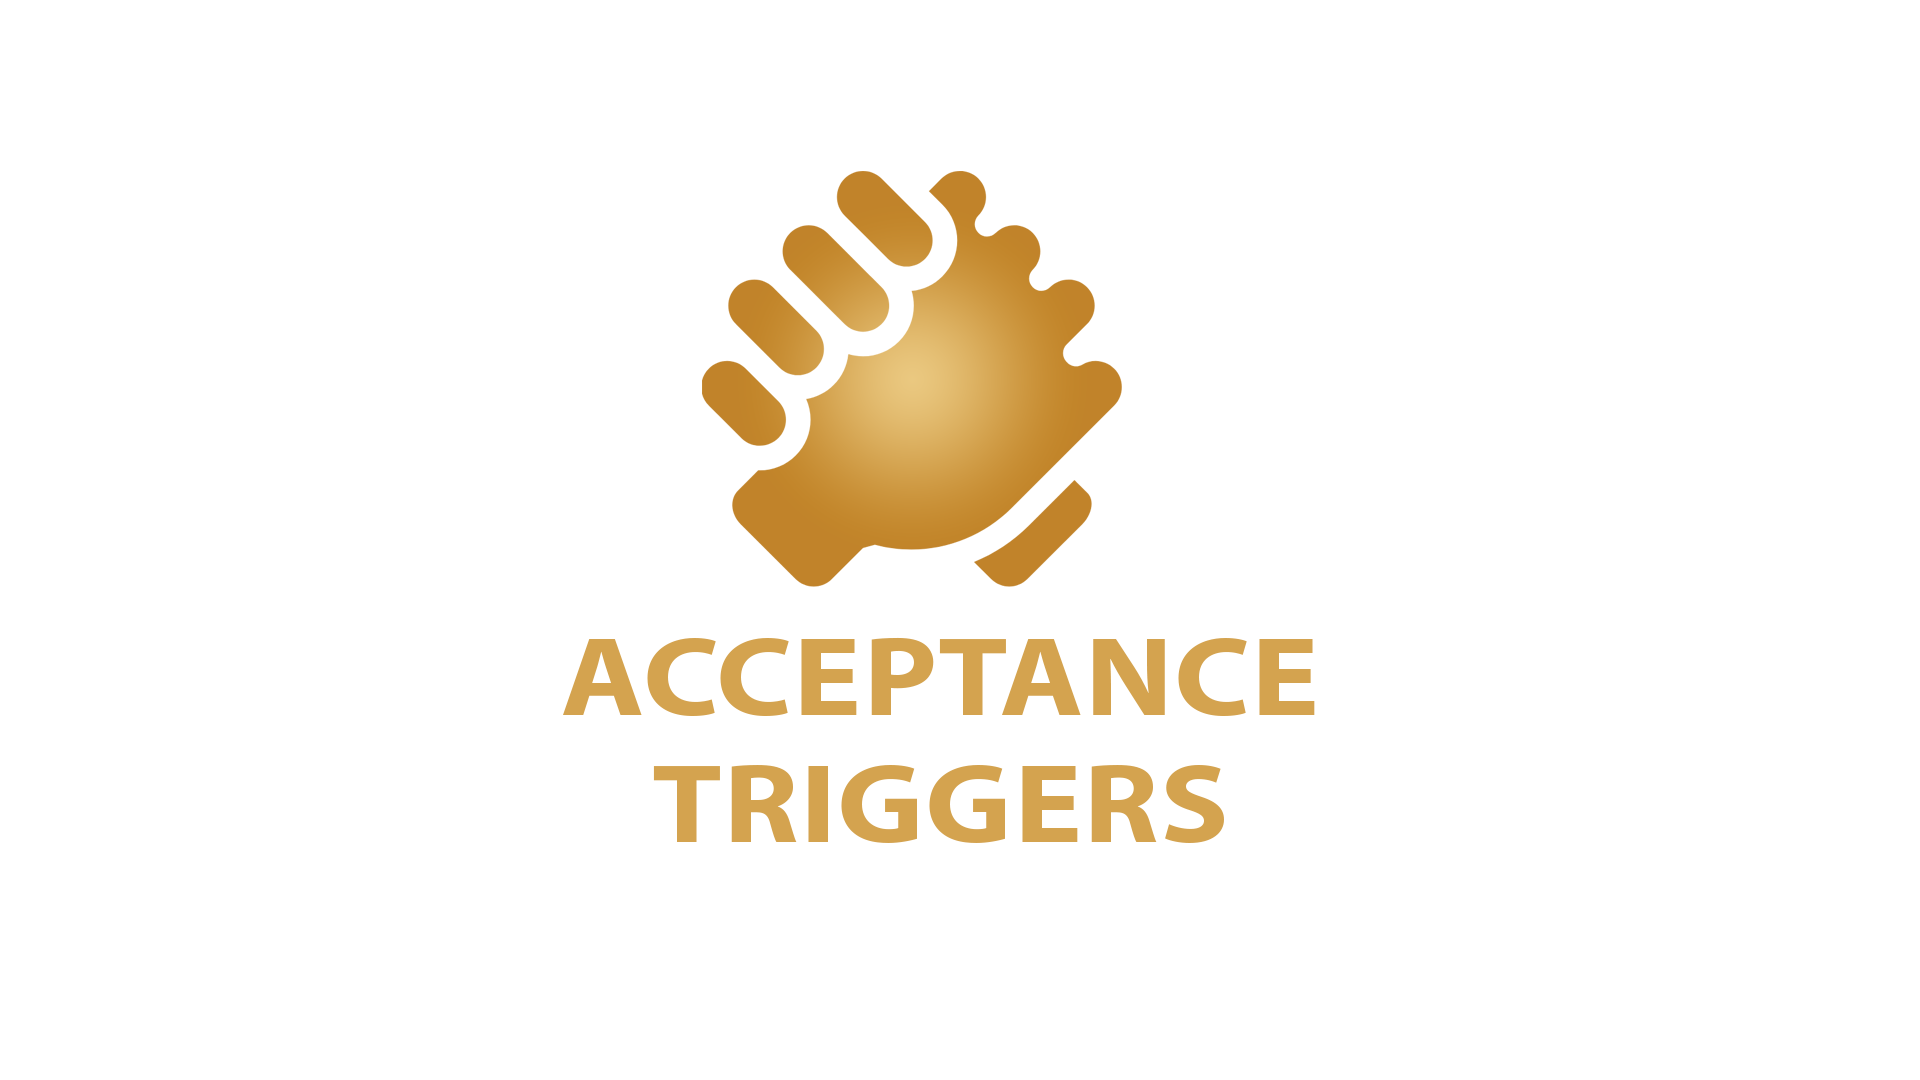 Acceptance triggers